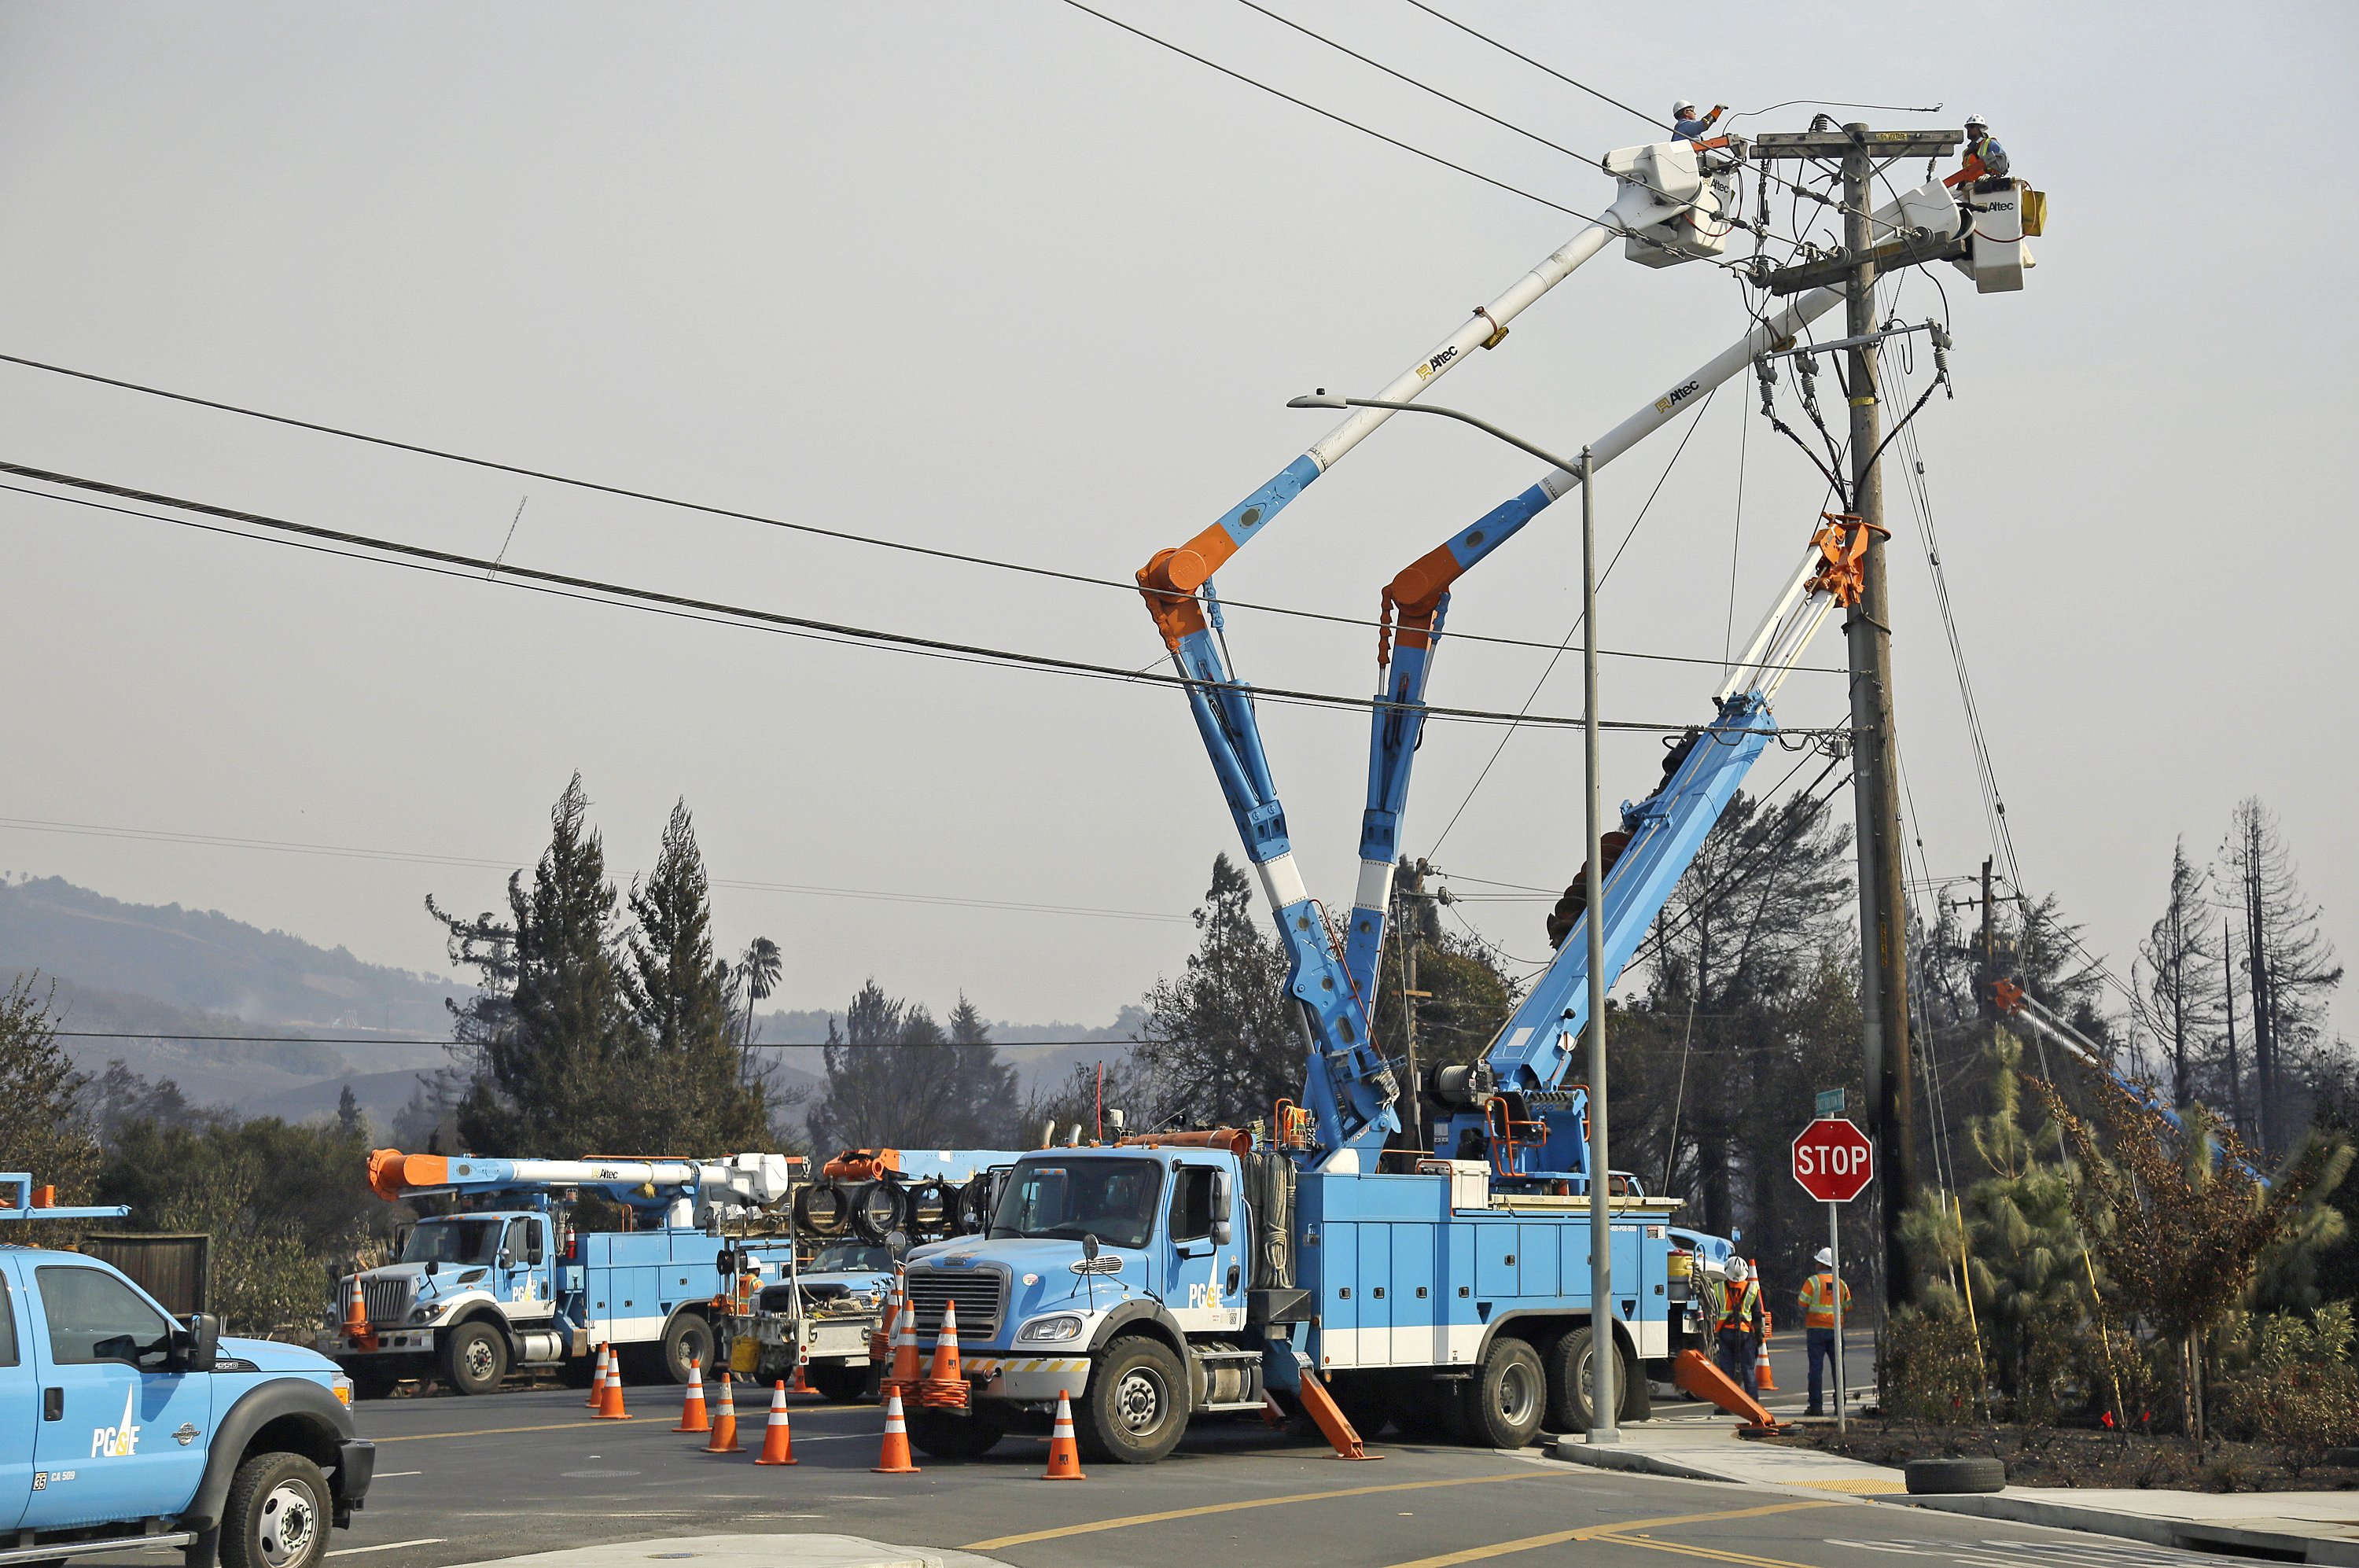 California utility warns of massive power cutoff in Northern California to prevent wildfires